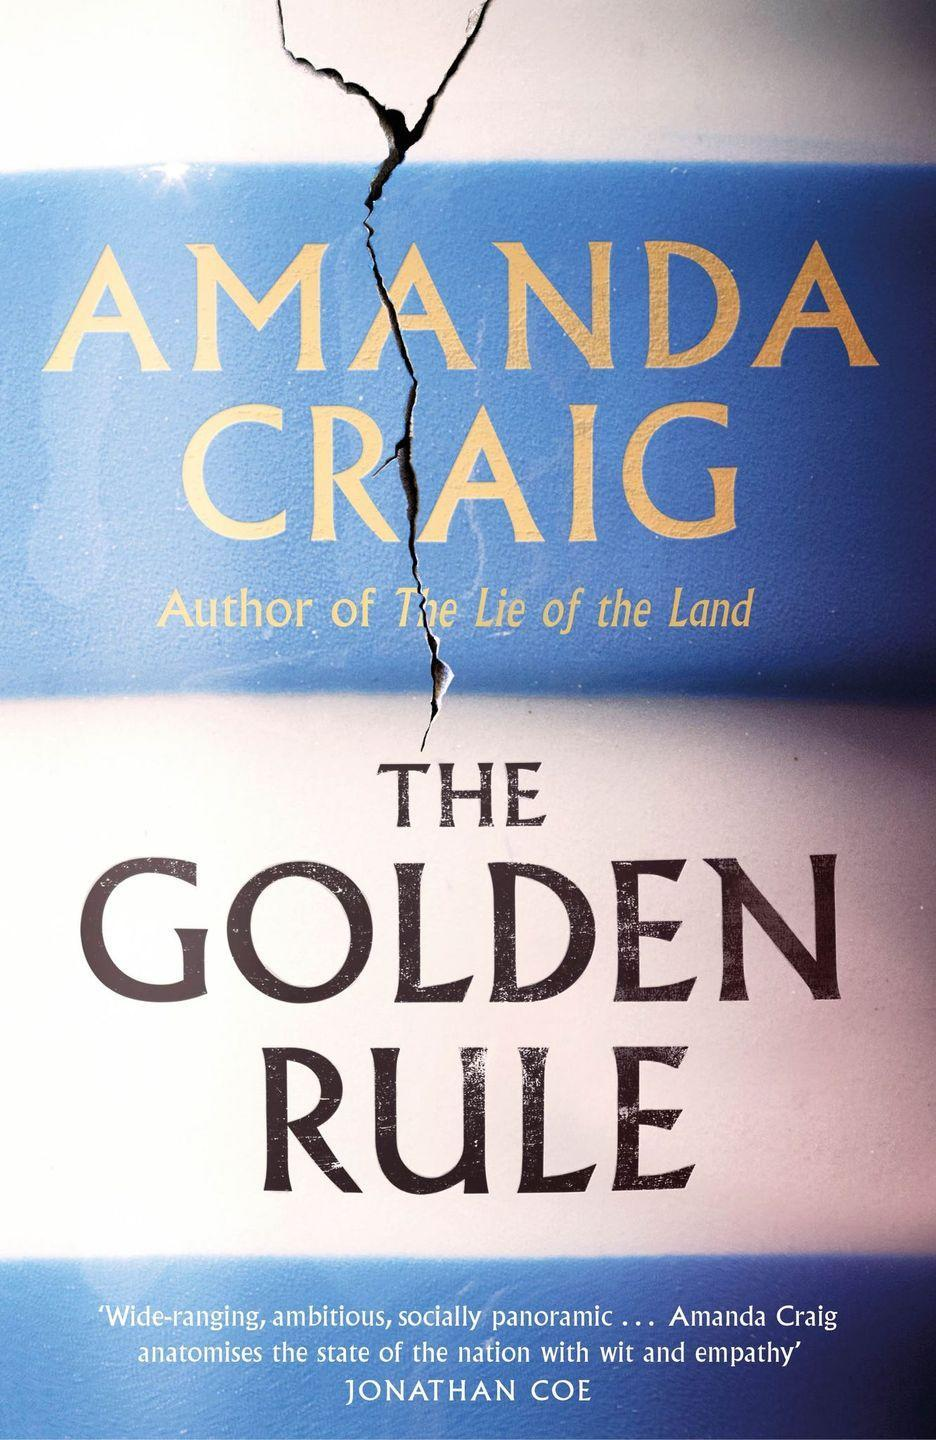 """<p>This compelling story of murder, revenge and broken promises is the ninth novel by the prolific and acclaimed Amanda Craig, set in remote Cornwall. <br><br>""""The Golden Rule by Amanda Craig [is] a thrilling, rollicking scorching state of the nation novel, which holds a mirror up to the differences and inequalities between the genders, the classes but also the rural-city divide."""" - Bernardine Evaristo</p><p><a class=""""link rapid-noclick-resp"""" href=""""https://www.amazon.co.uk/Golden-Rule-Amanda-Craig/dp/1408711524/ref=sr_1_1?adgrpid=104058862055&dchild=1&gclid=Cj0KCQiAnKeCBhDPARIsAFDTLTIfmfo3c3cQ9C6_fj5n1H4CaONzRyw1m3j52GAtYe00RpzV64zTfRMaAoBzEALw_wcB&hvadid=446436613623&hvdev=c&hvlocphy=9073583&hvnetw=g&hvqmt=b&hvrand=12936651017217471240&hvtargid=kwd-299789386283&hydadcr=28150_1724812&keywords=the+golden+rule&qid=1615458536&sr=8-1&tag=hearstuk-yahoo-21&ascsubtag=%5Bartid%7C1927.g.35797924%5Bsrc%7Cyahoo-uk"""" rel=""""nofollow noopener"""" target=""""_blank"""" data-ylk=""""slk:SHOP NOW"""">SHOP NOW</a></p>"""